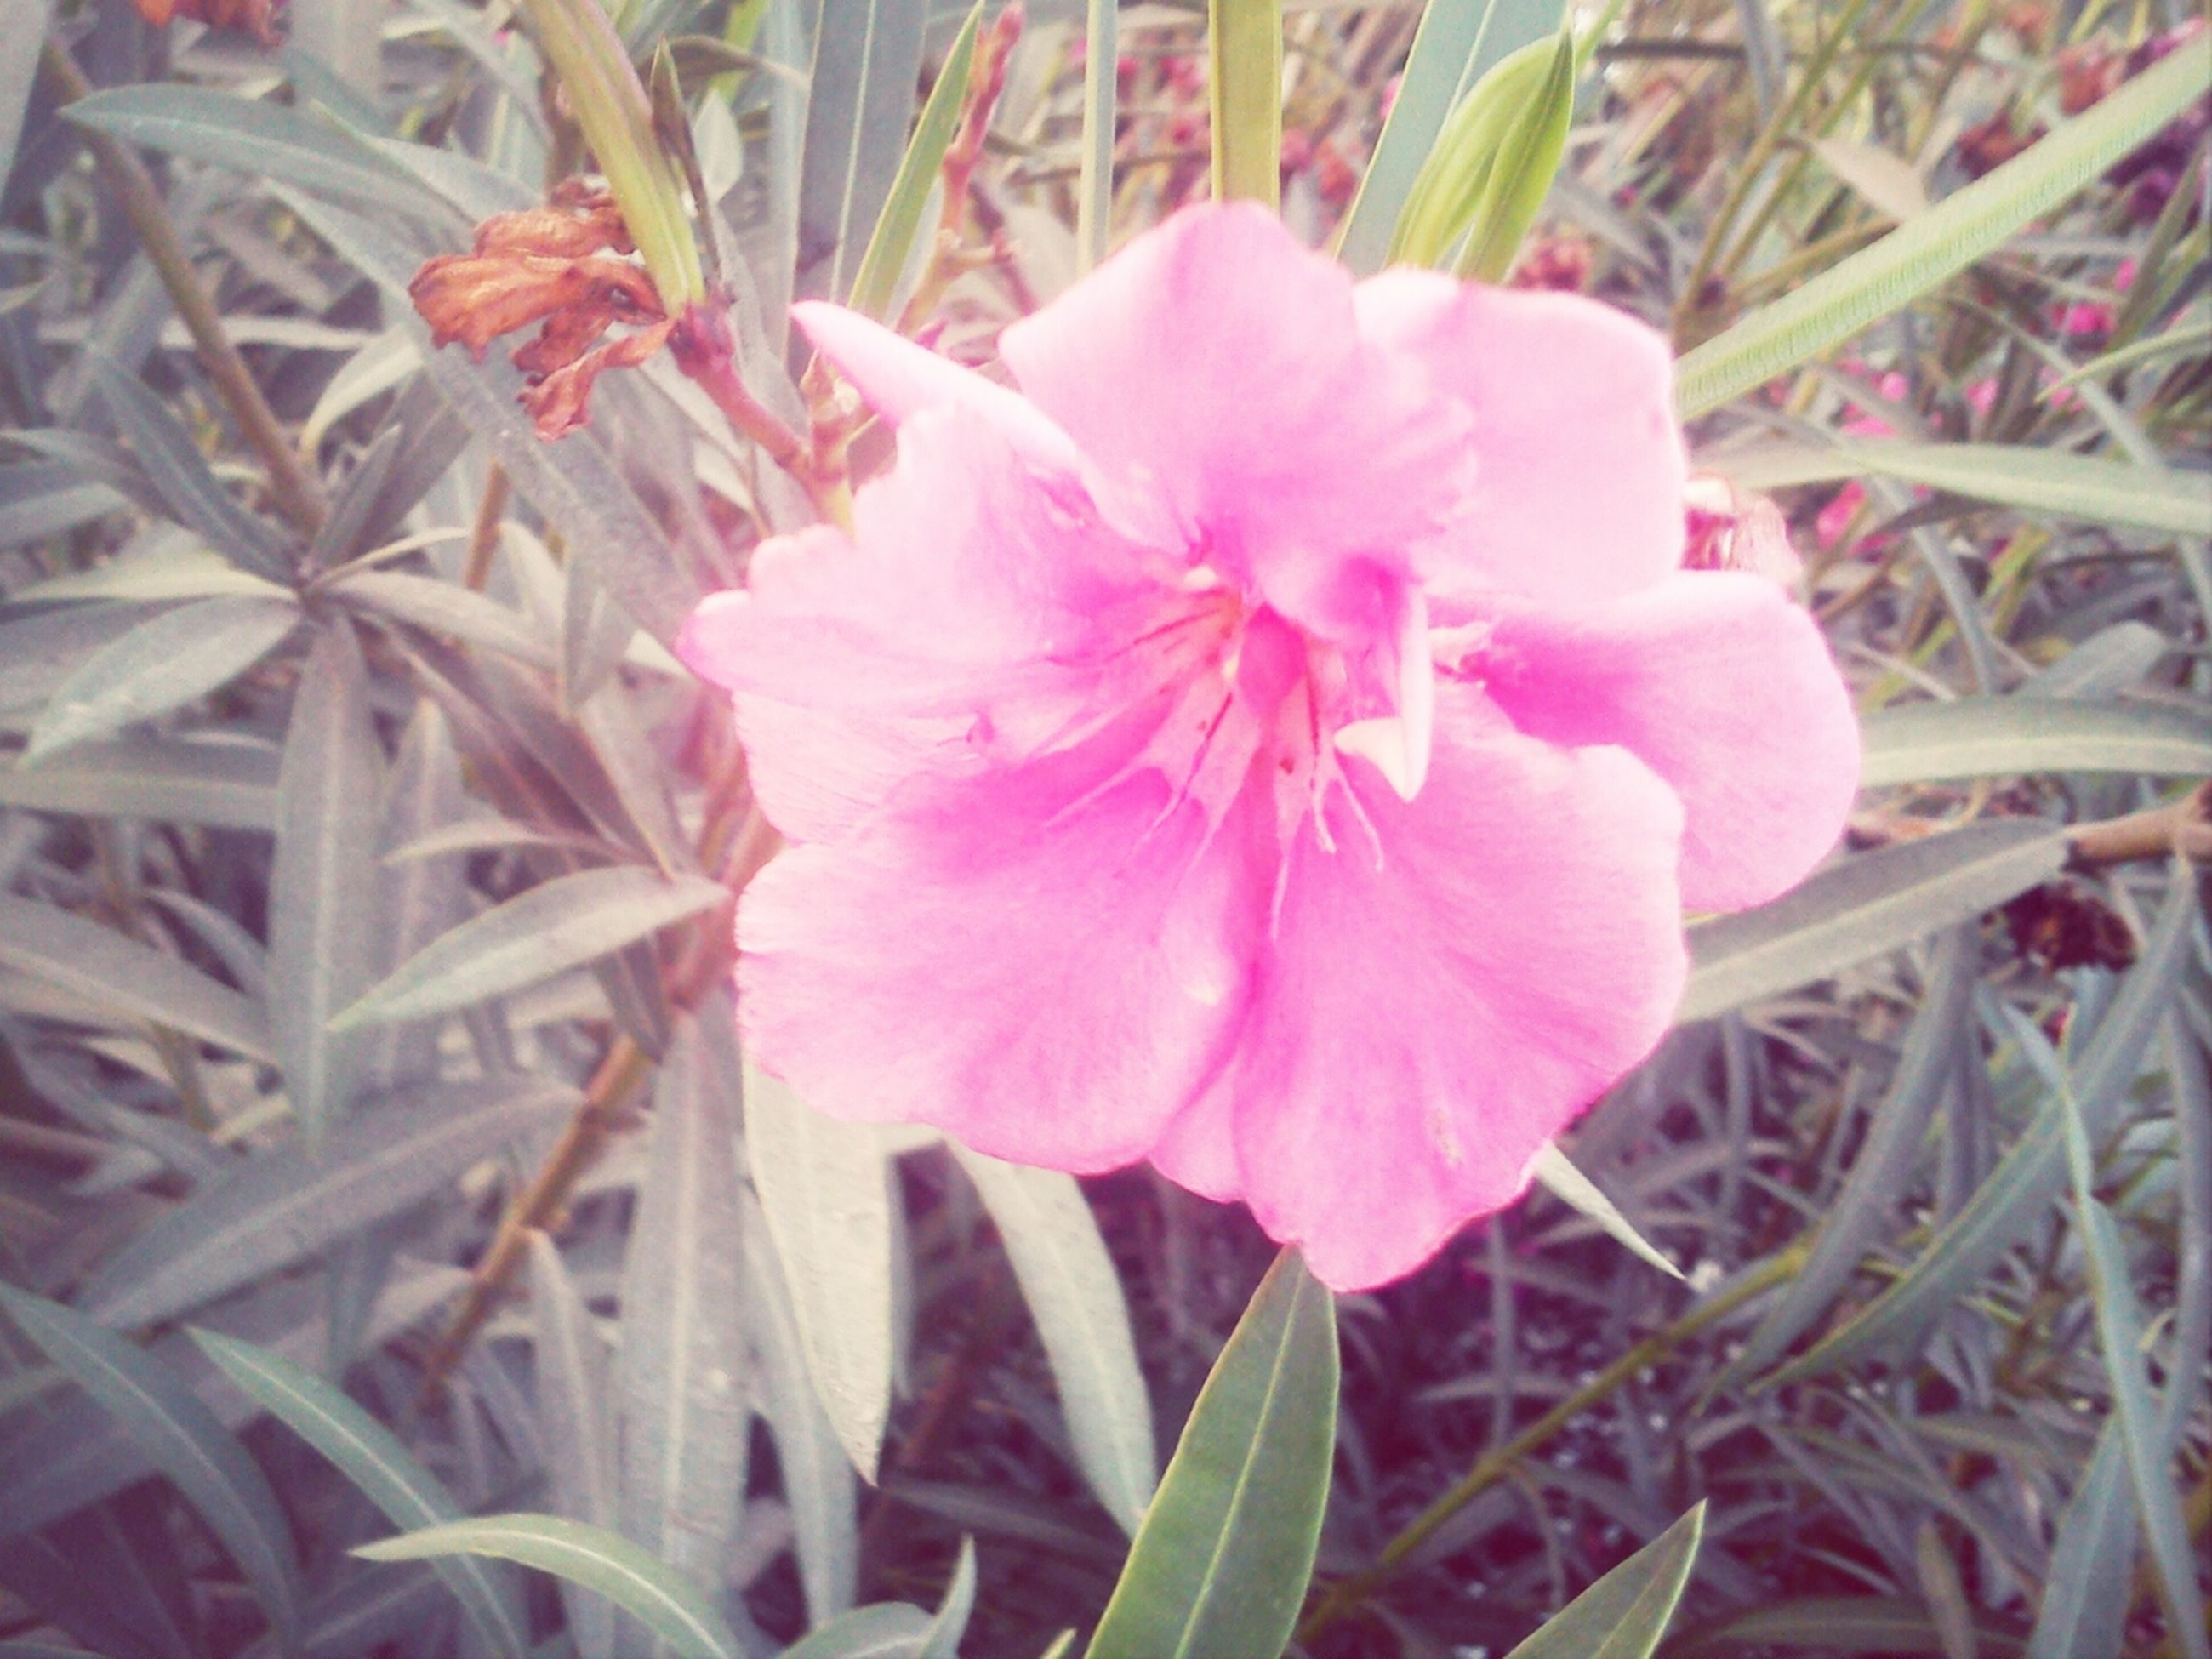 flower, freshness, growth, fragility, petal, pink color, flower head, close-up, beauty in nature, plant, nature, focus on foreground, blooming, in bloom, pink, outdoors, leaf, day, single flower, botany